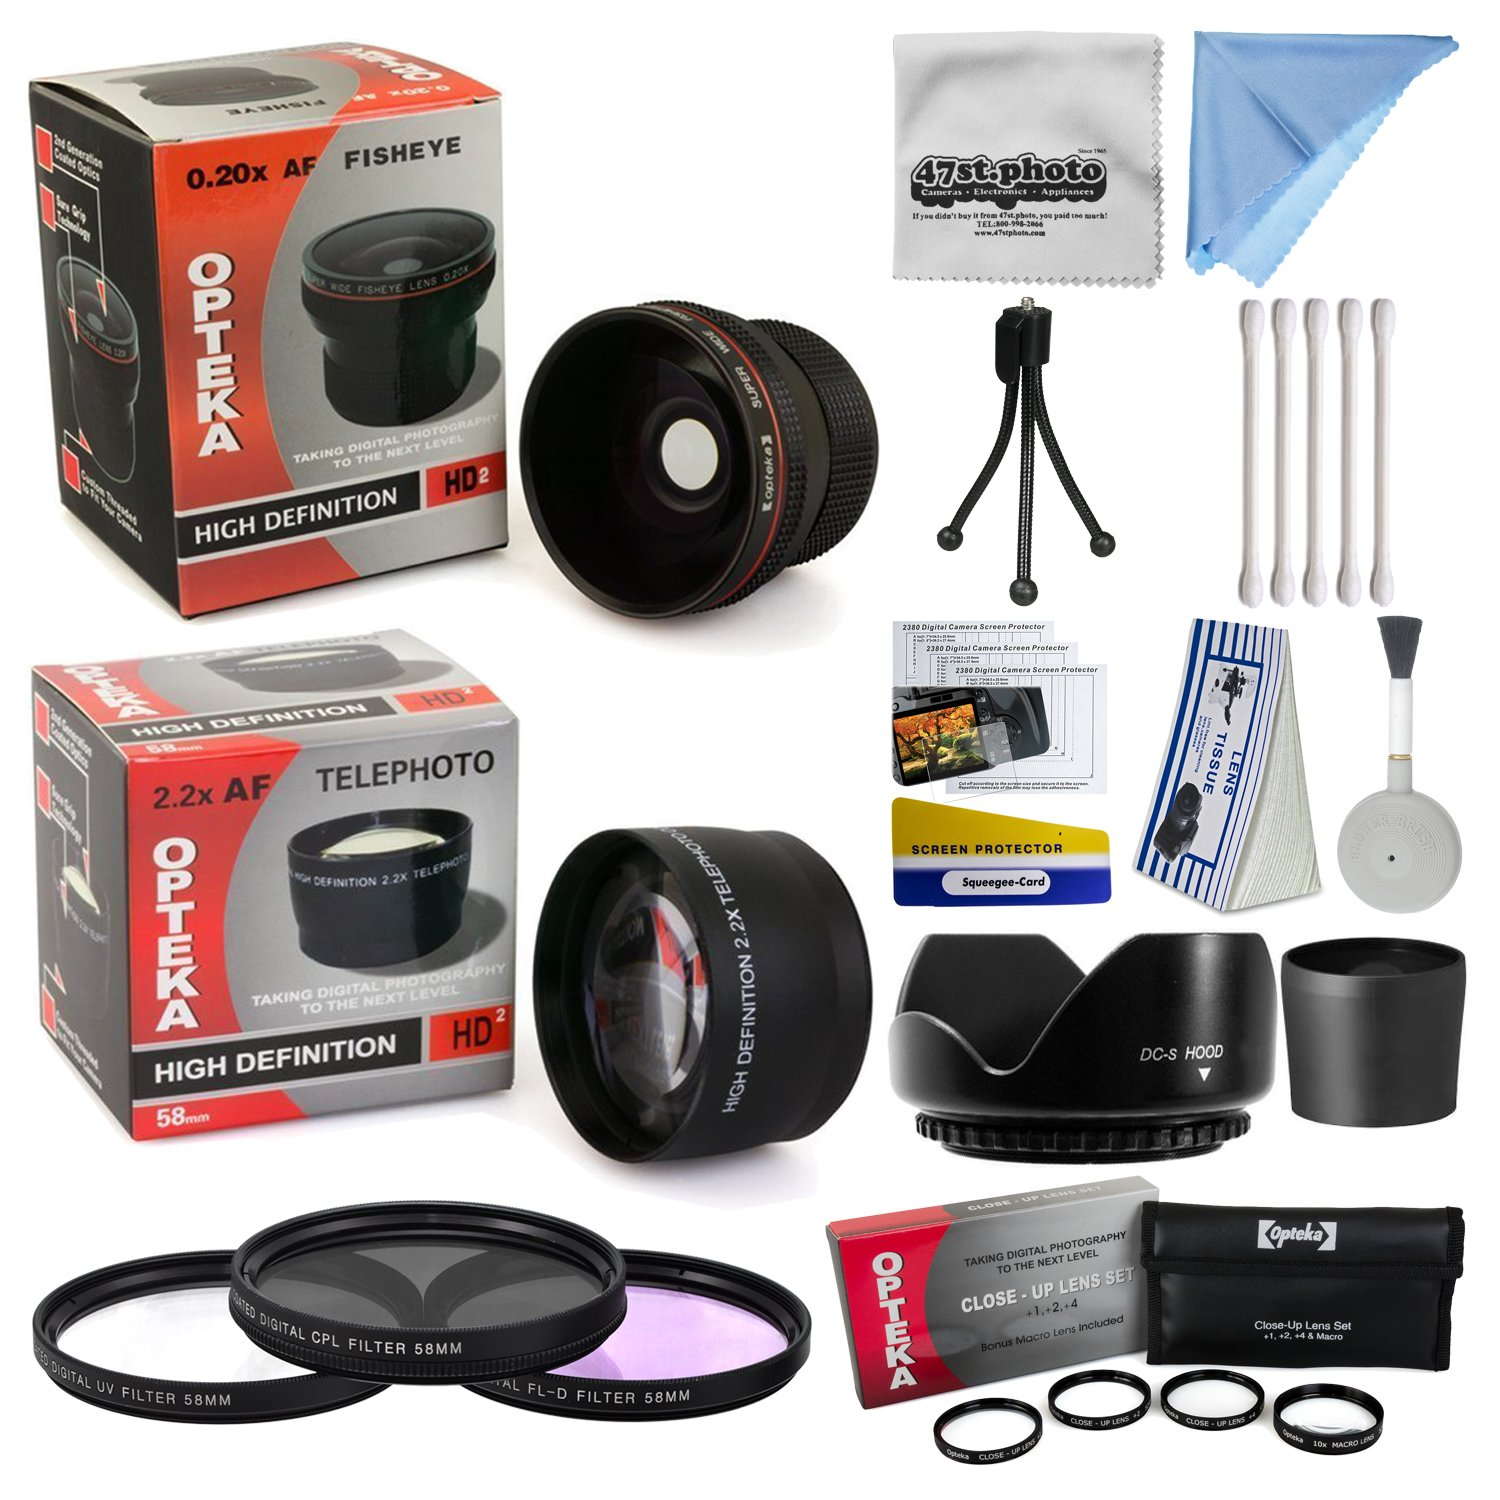 Canon Powershot A570 A590 Ultimate 15 Piece Lens Kit Package Includes 0.20X Super Wide Angle Fisheye lens, 5 PC Close-Up Set (+1, +2,+4 with 10X Macro Lens) , 2.2x HD AF Telephoto Lens + 3 Piece Pro Filter Kit (UV, CPL, FLD) + Tube Adapter + Deluxe Lens C